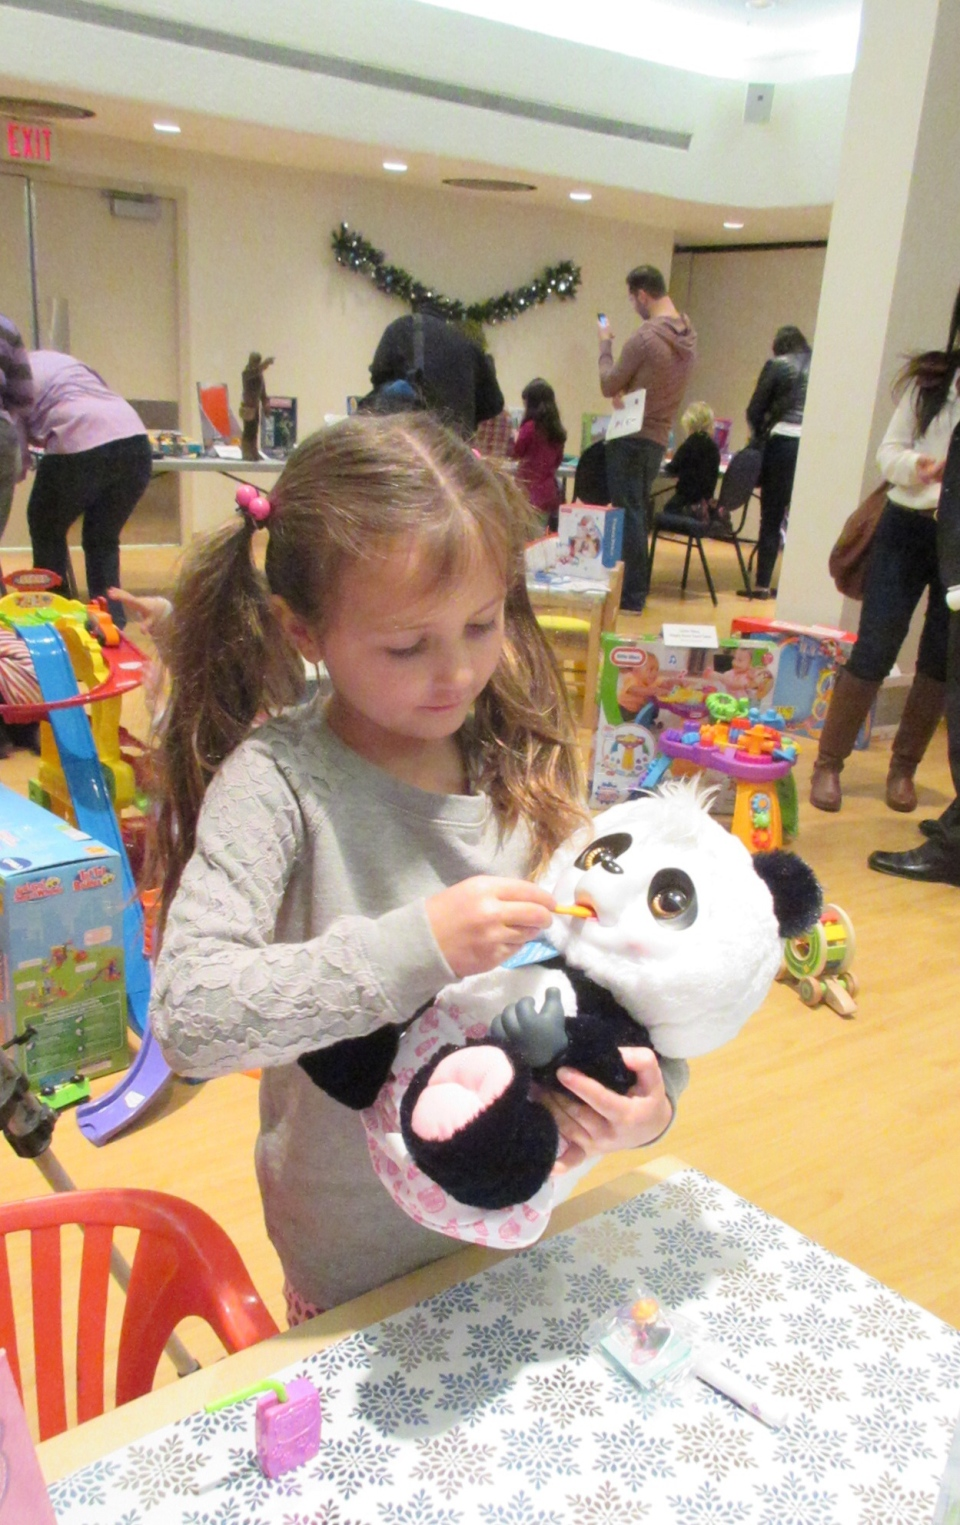 Hannah Ruscio, 6, plays with Animal Babies Crunchy Munchy Panda at a hottest toys showcase in downtown Toronto on Tuesday. Nov. 4, 2014. (Angela Mulholland / CTVNews.ca)